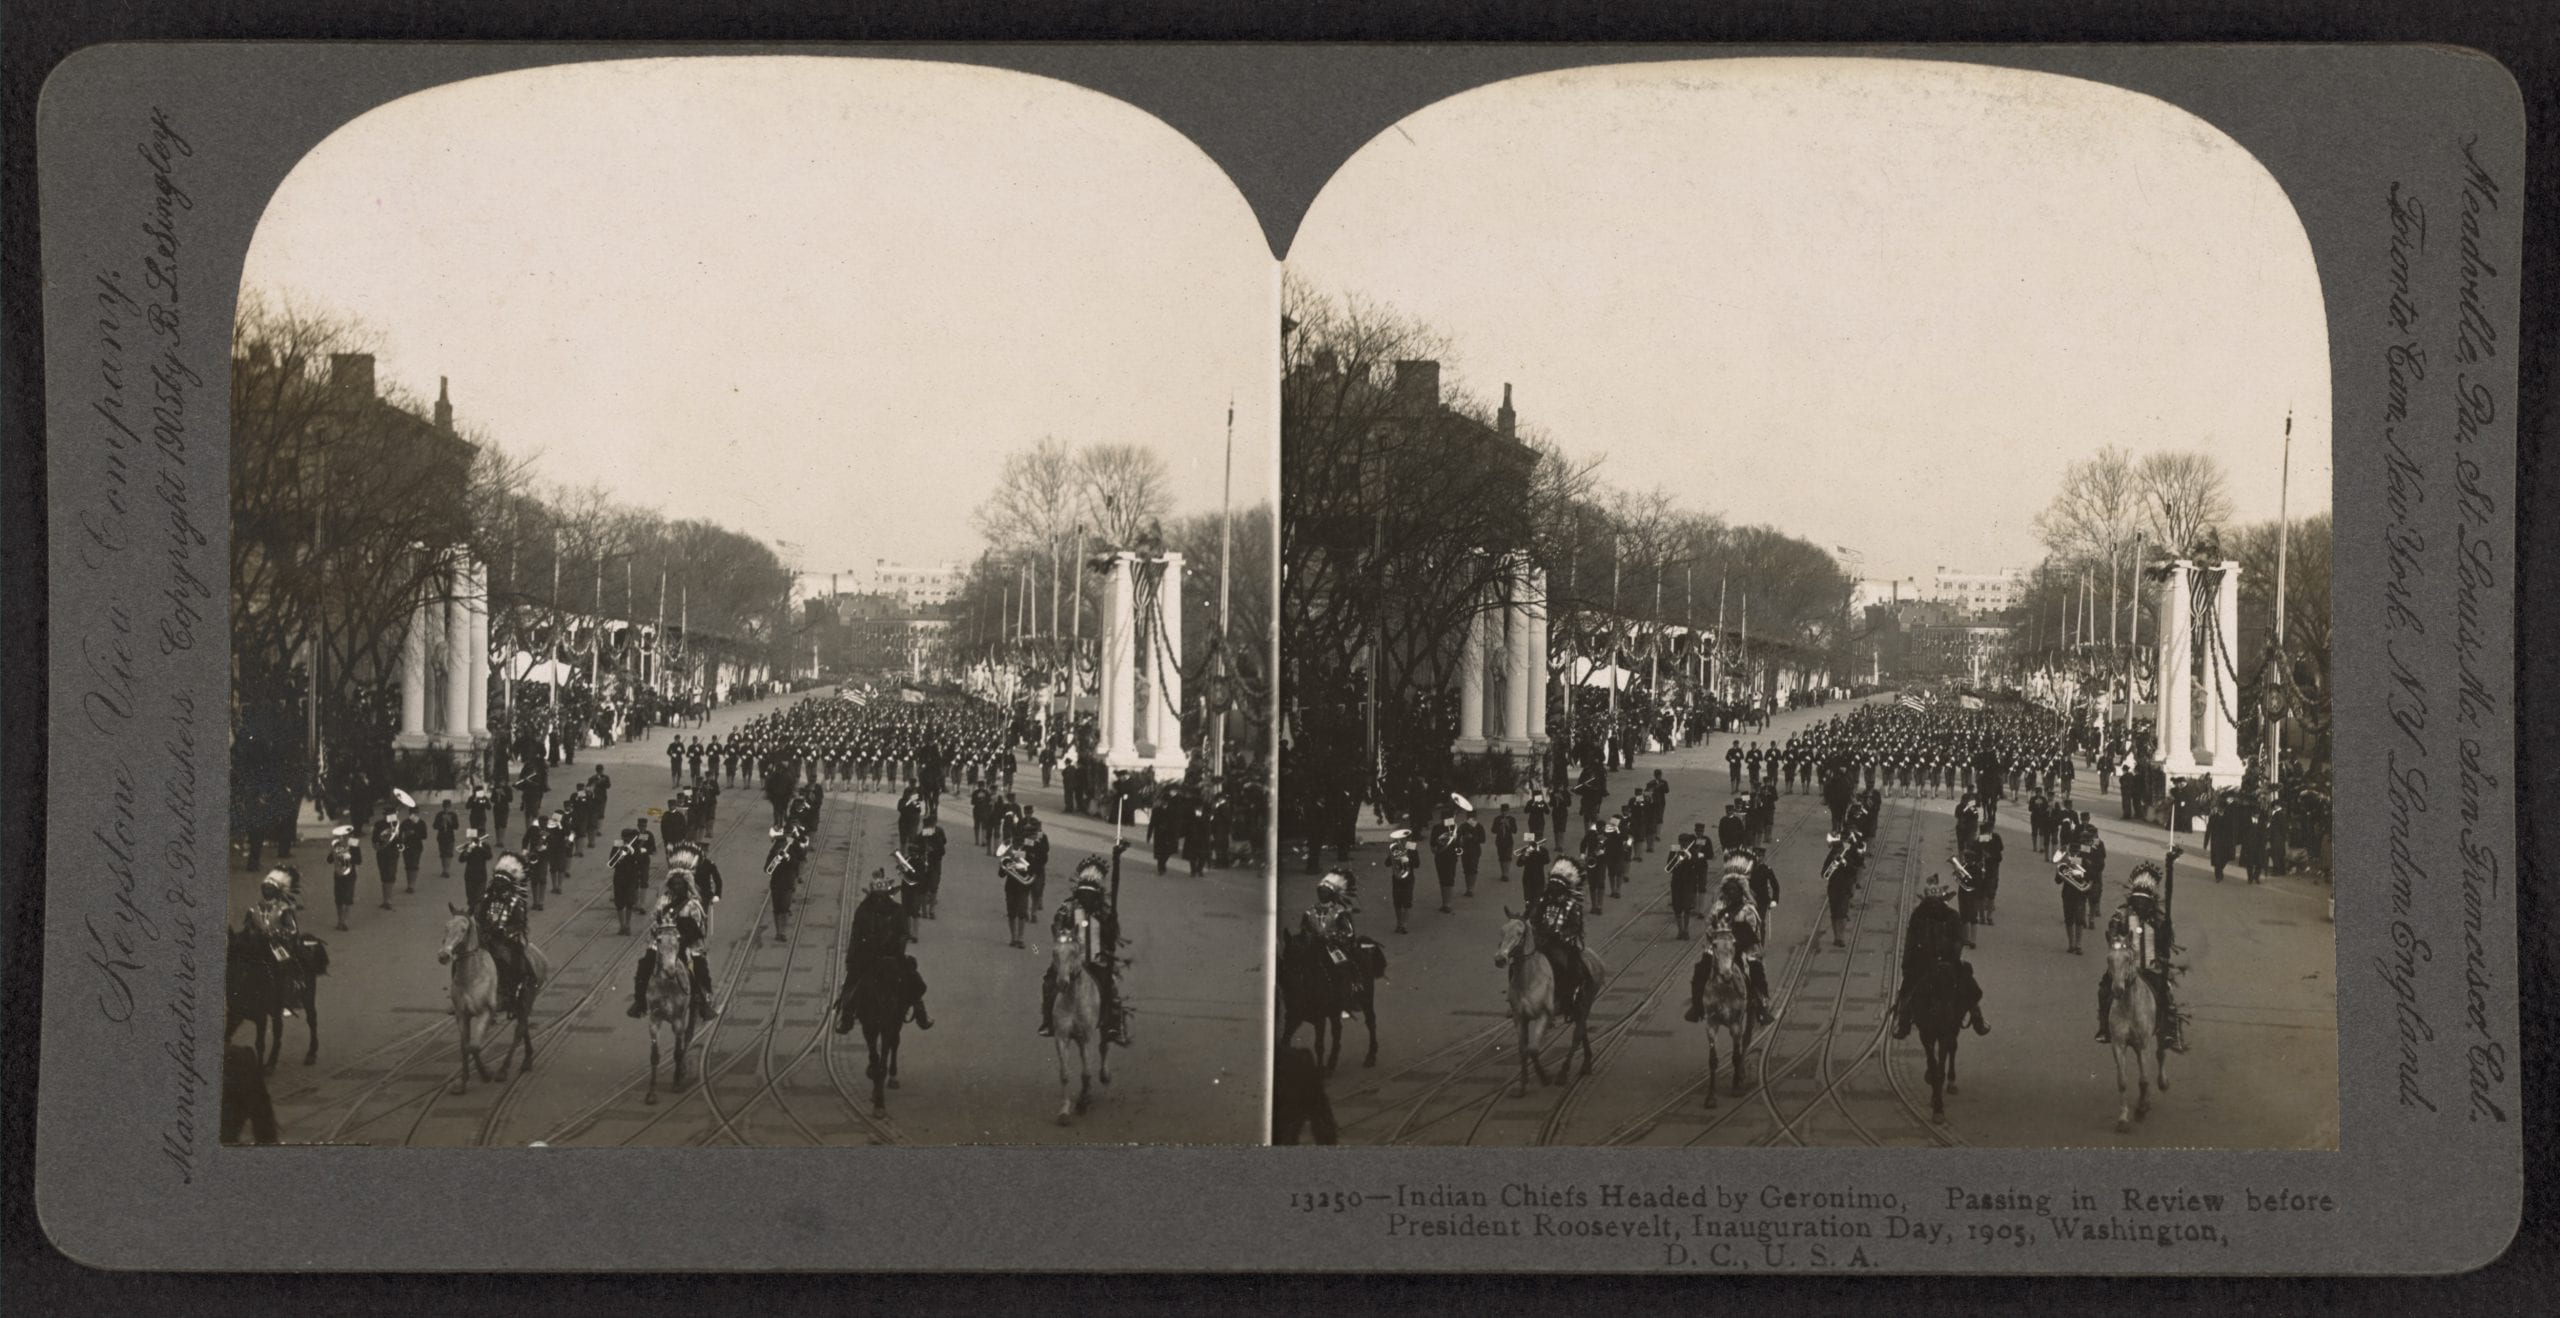 Indian chiefs headed by Geronimo, passing in review before President Roosevelt, Inauguration Day, 1905